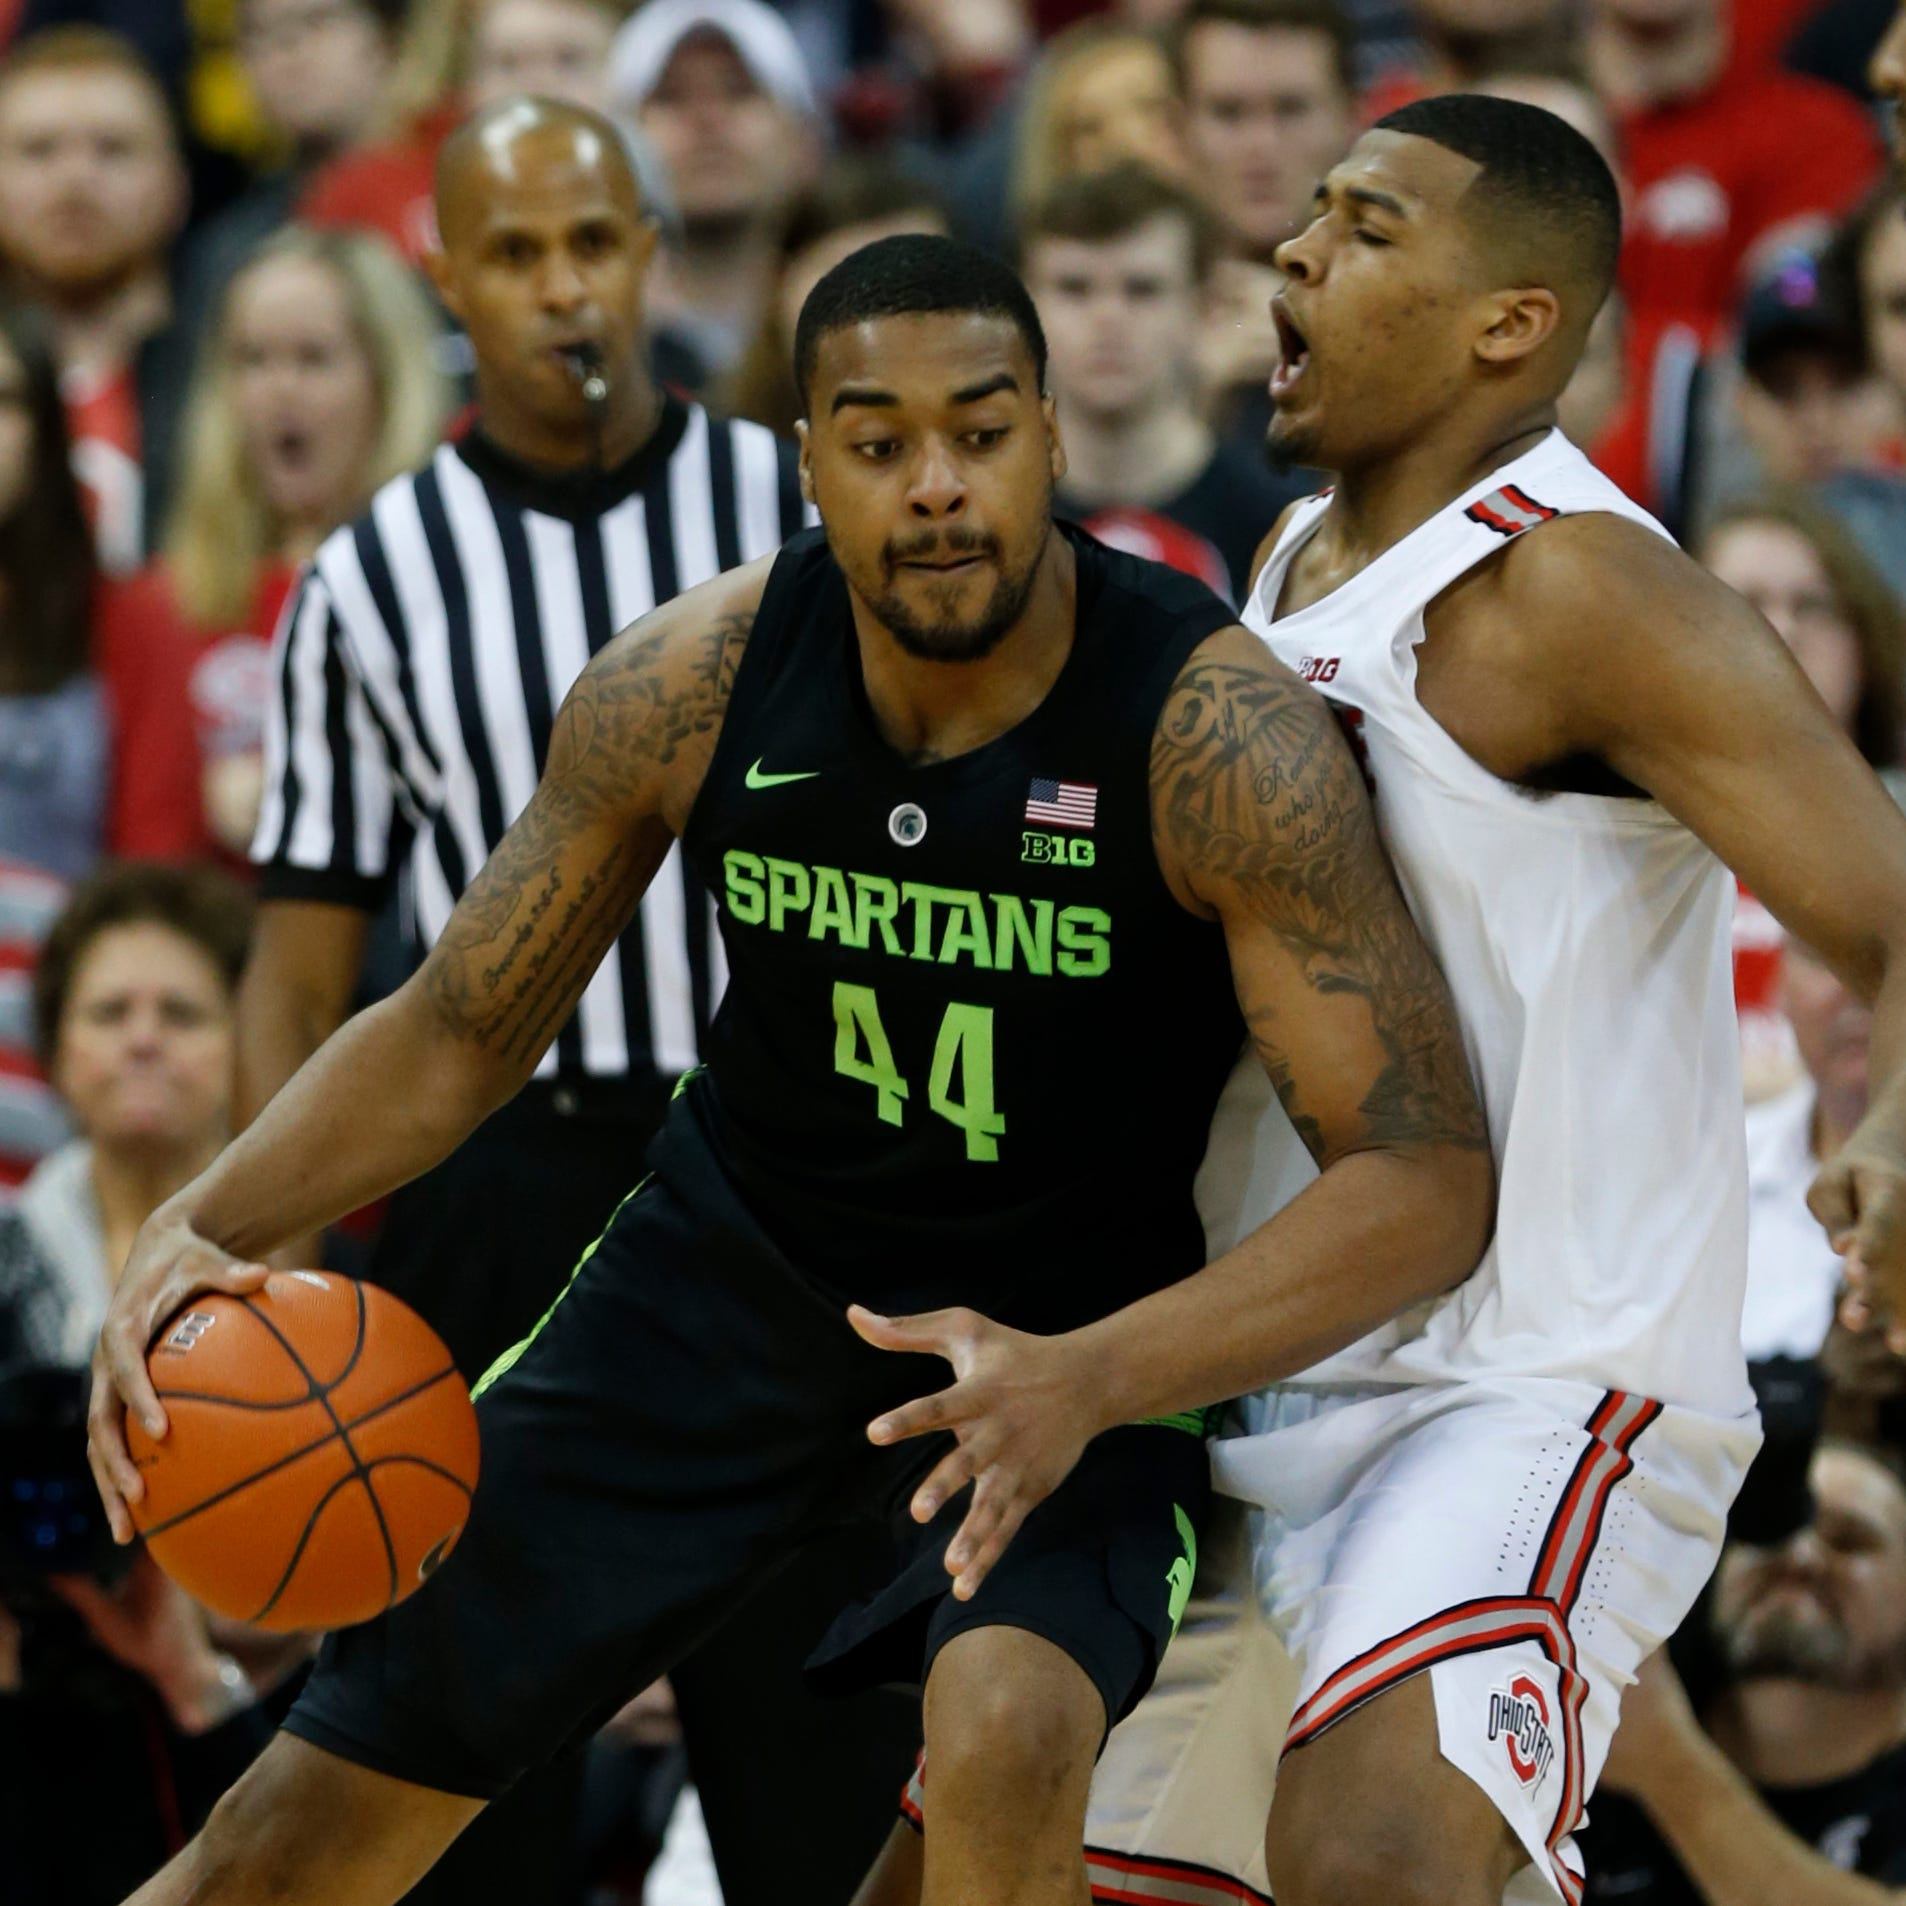 Live updates: Ward returns for MSU in tie game with OSU